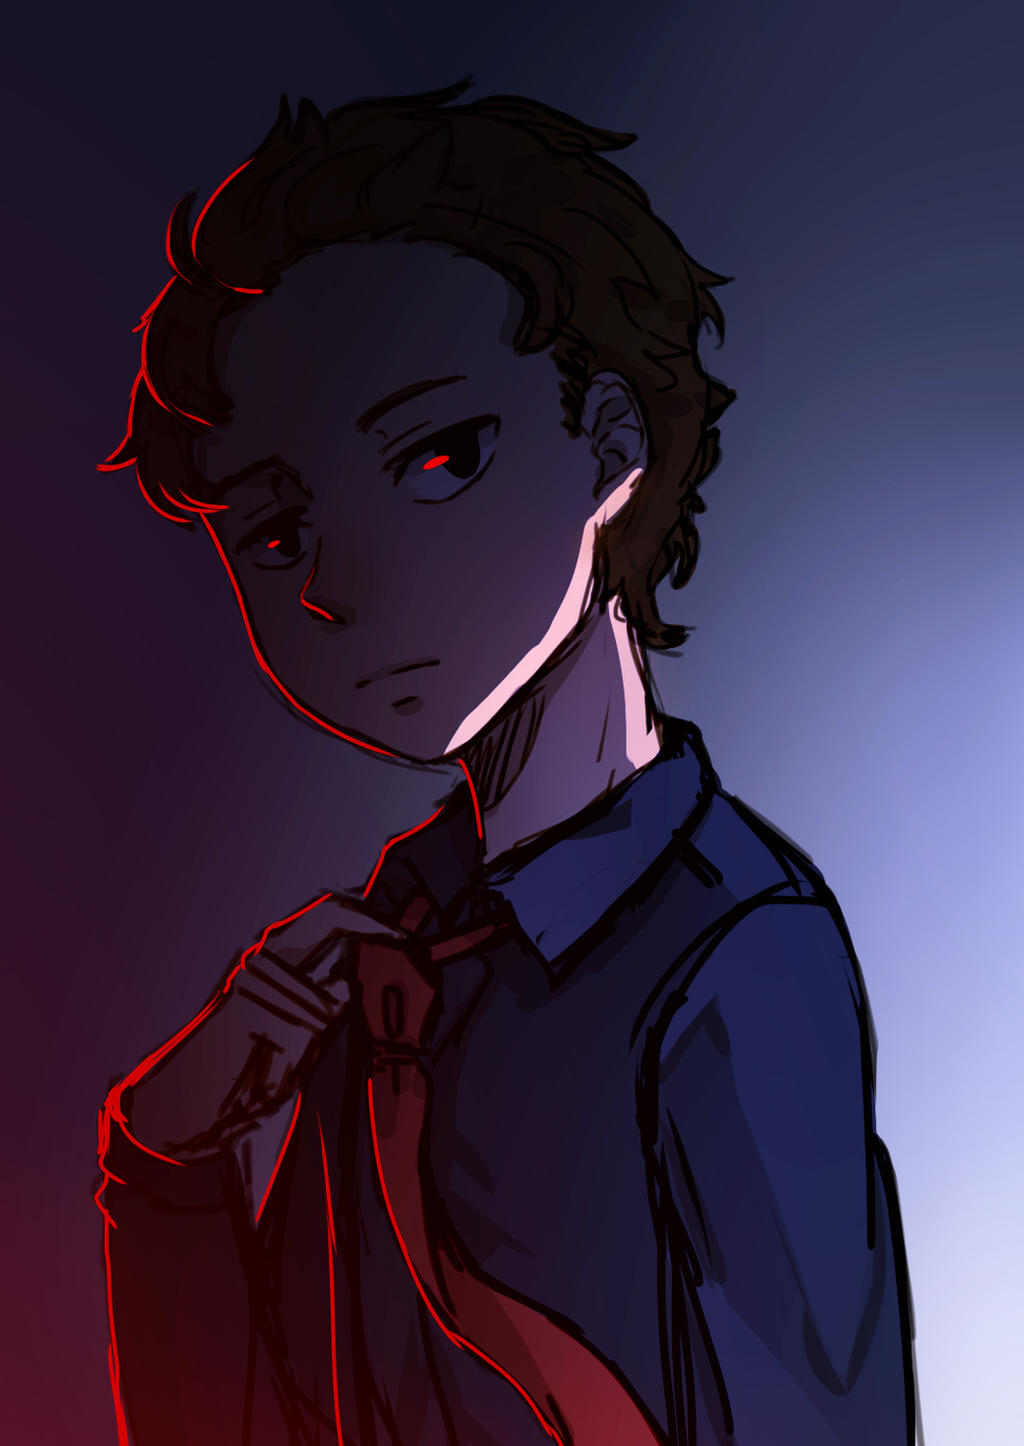 Evil morty by Mayunnaize on DeviantArt